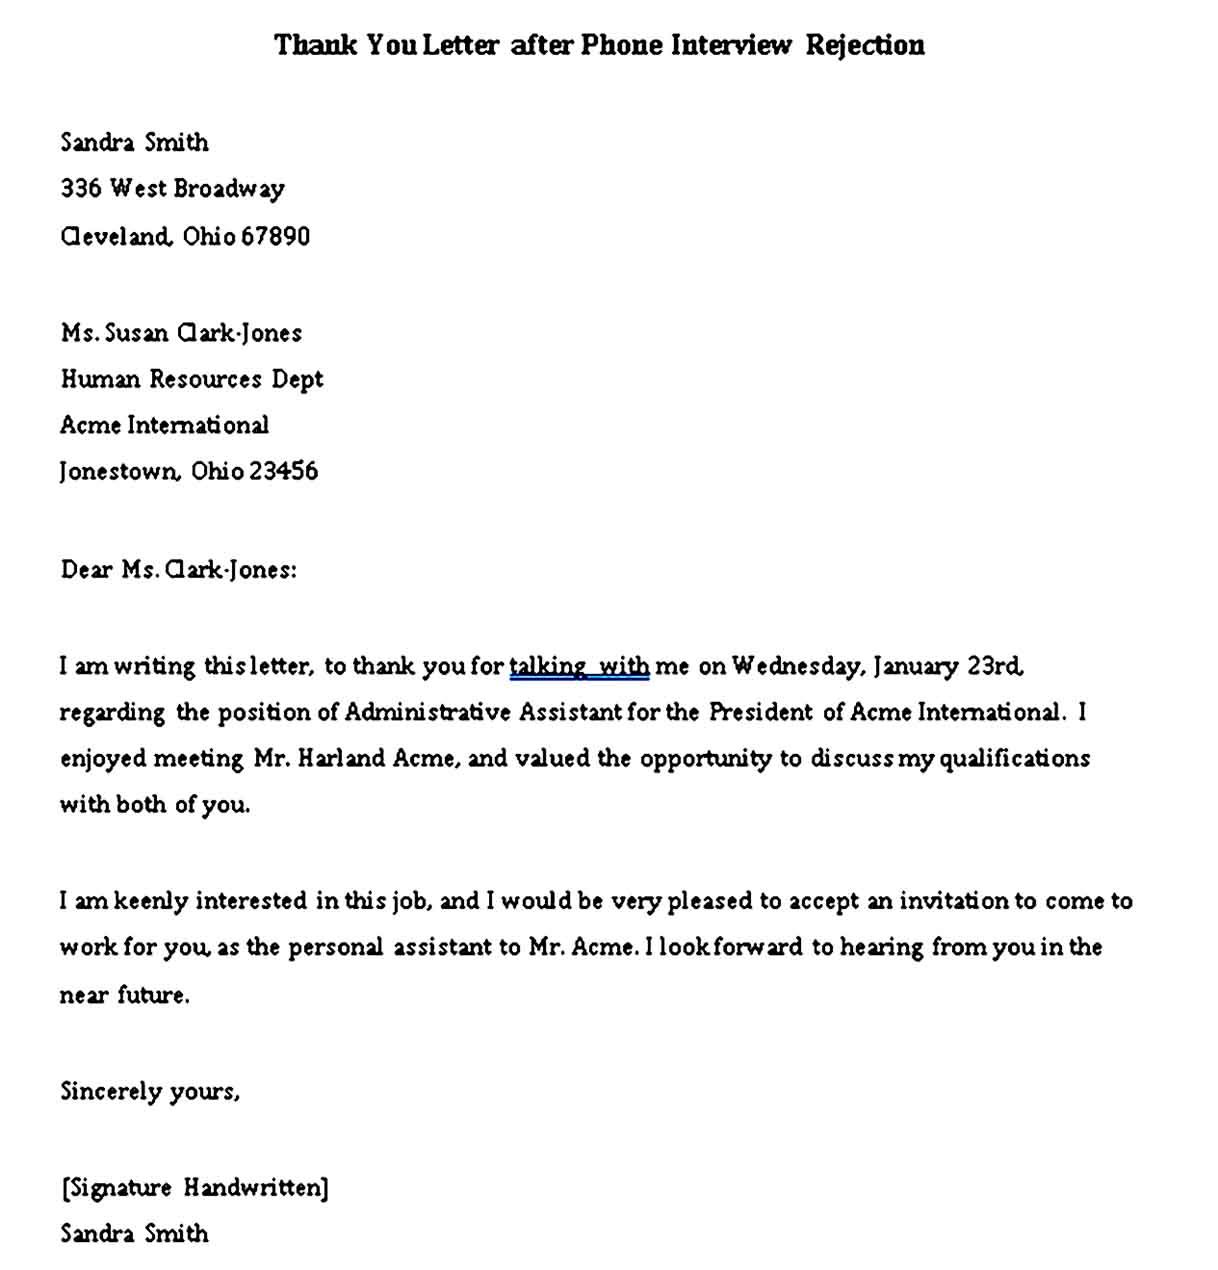 Thank You Letter after Phone Interview Rejection